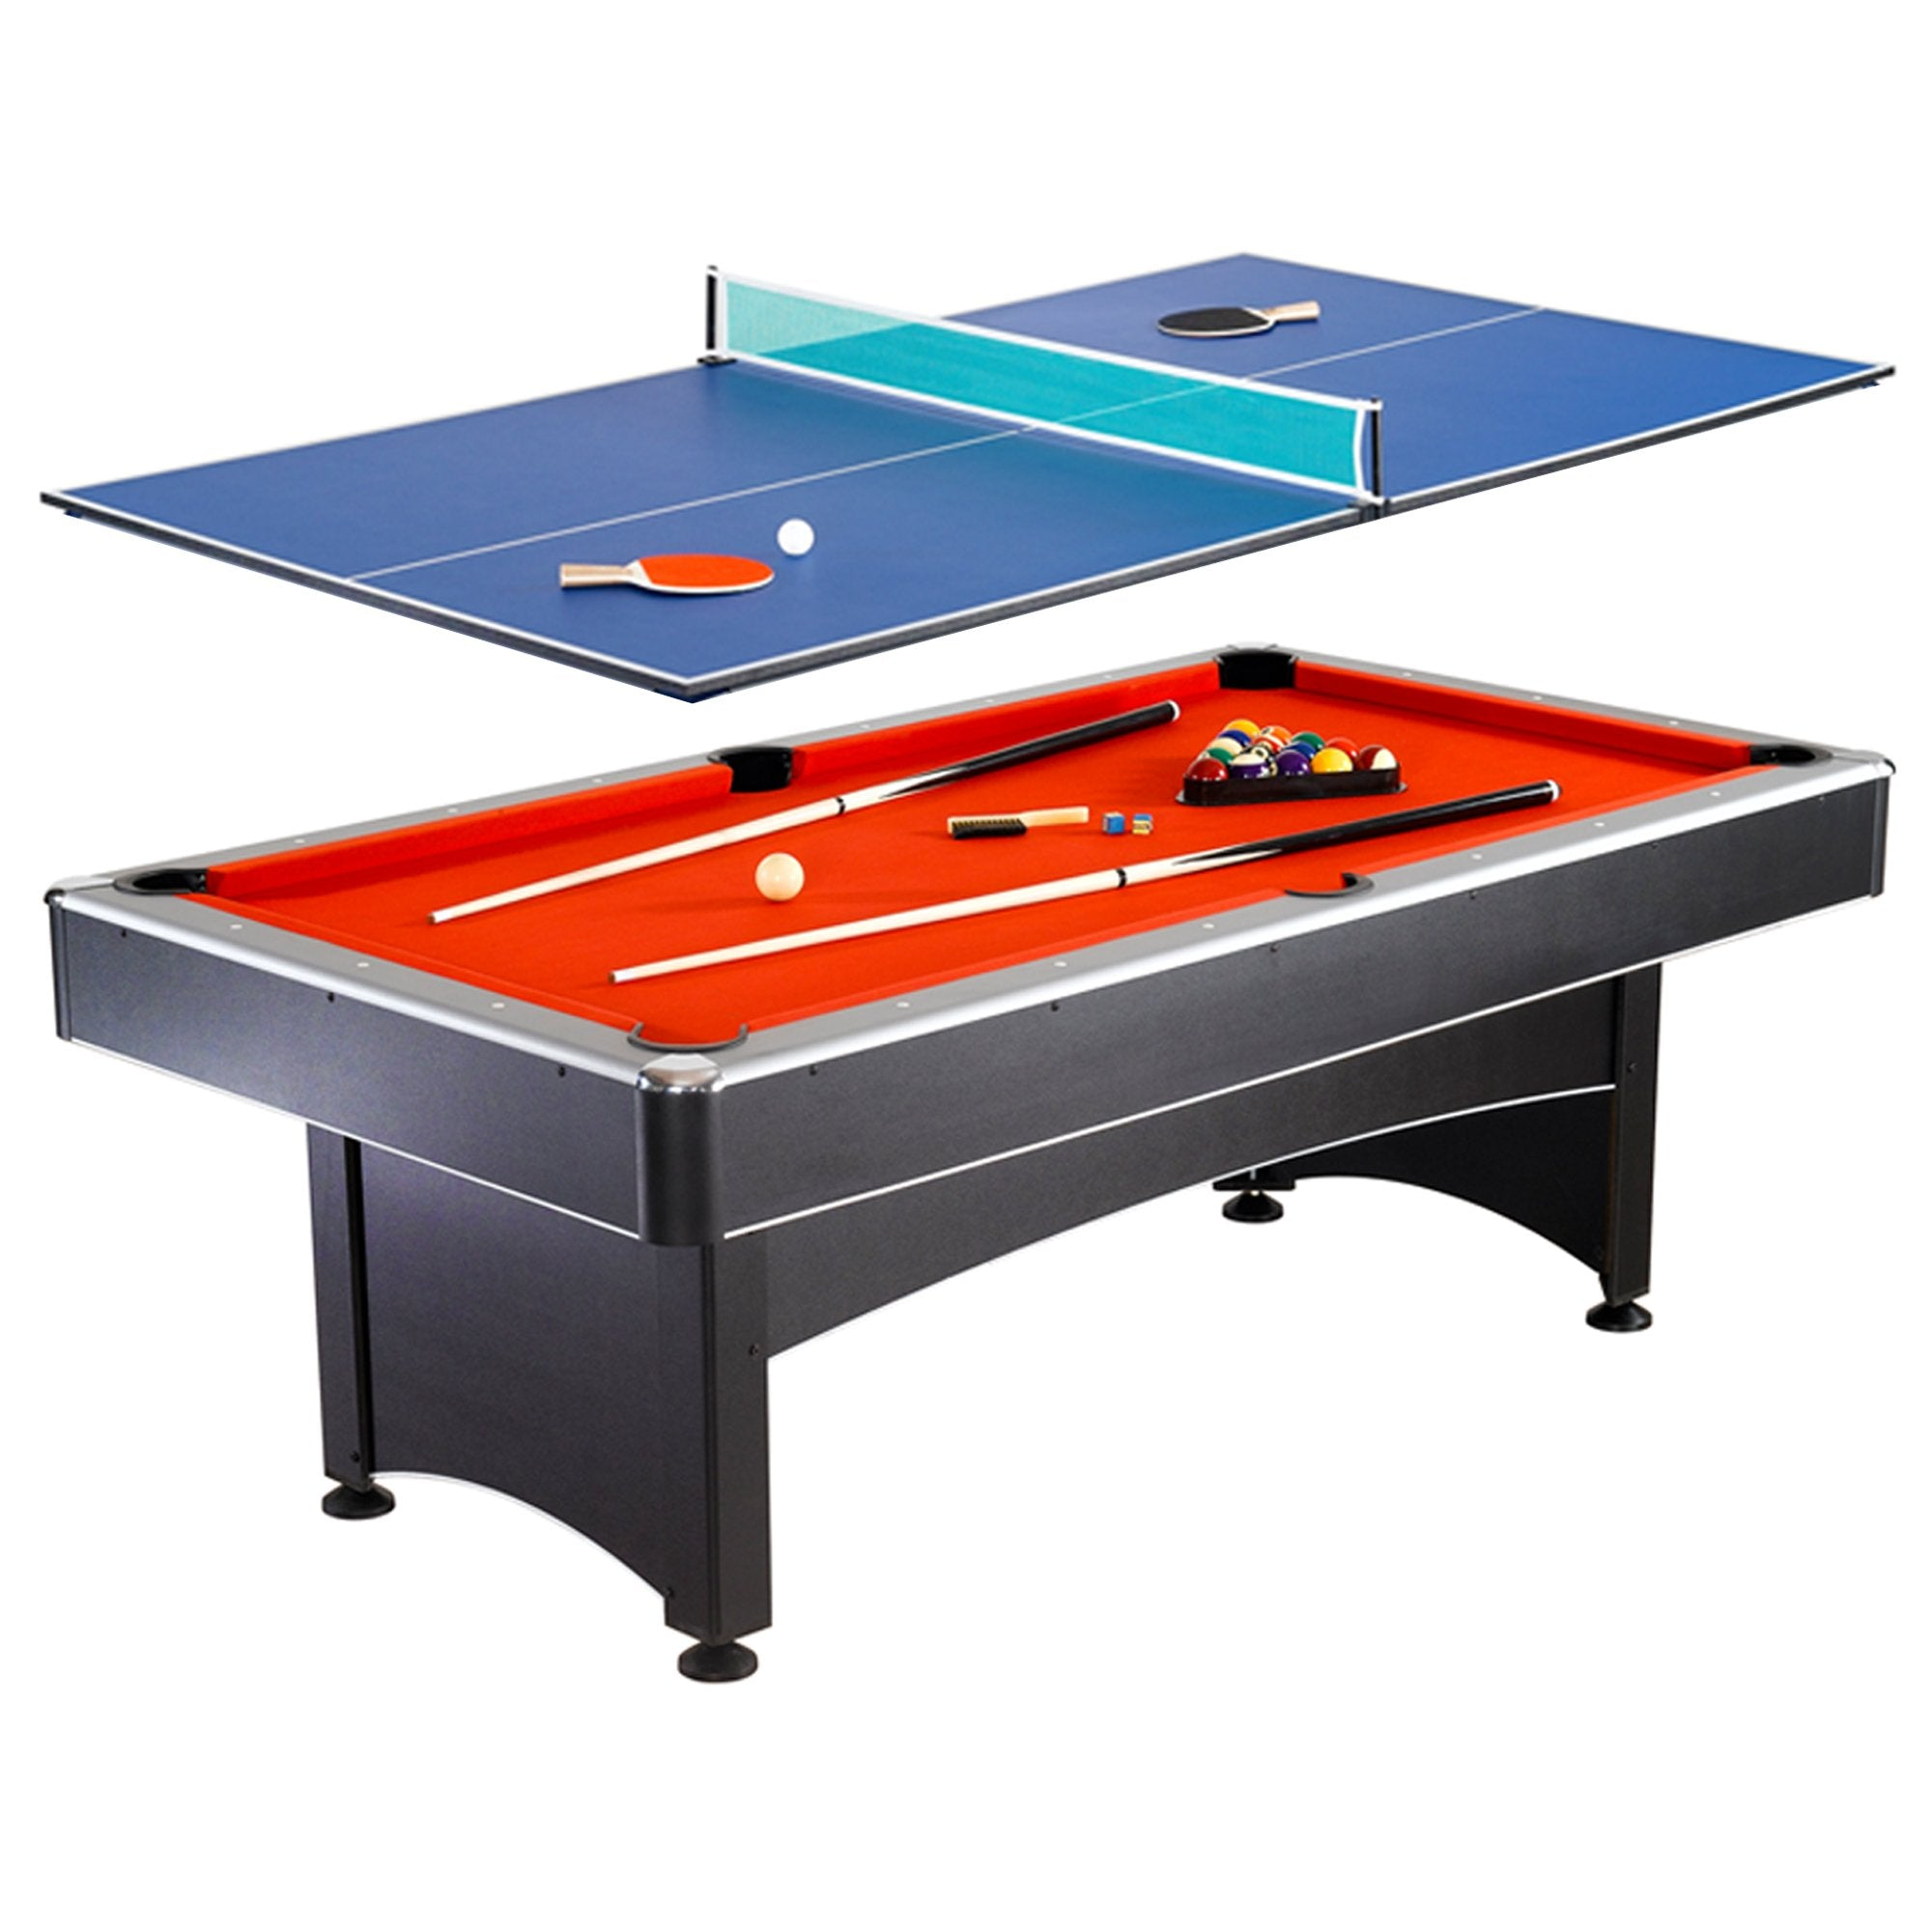 Hathaway Maverick 7ft Multi Game Table 2 in 1 - Gaming Blaze